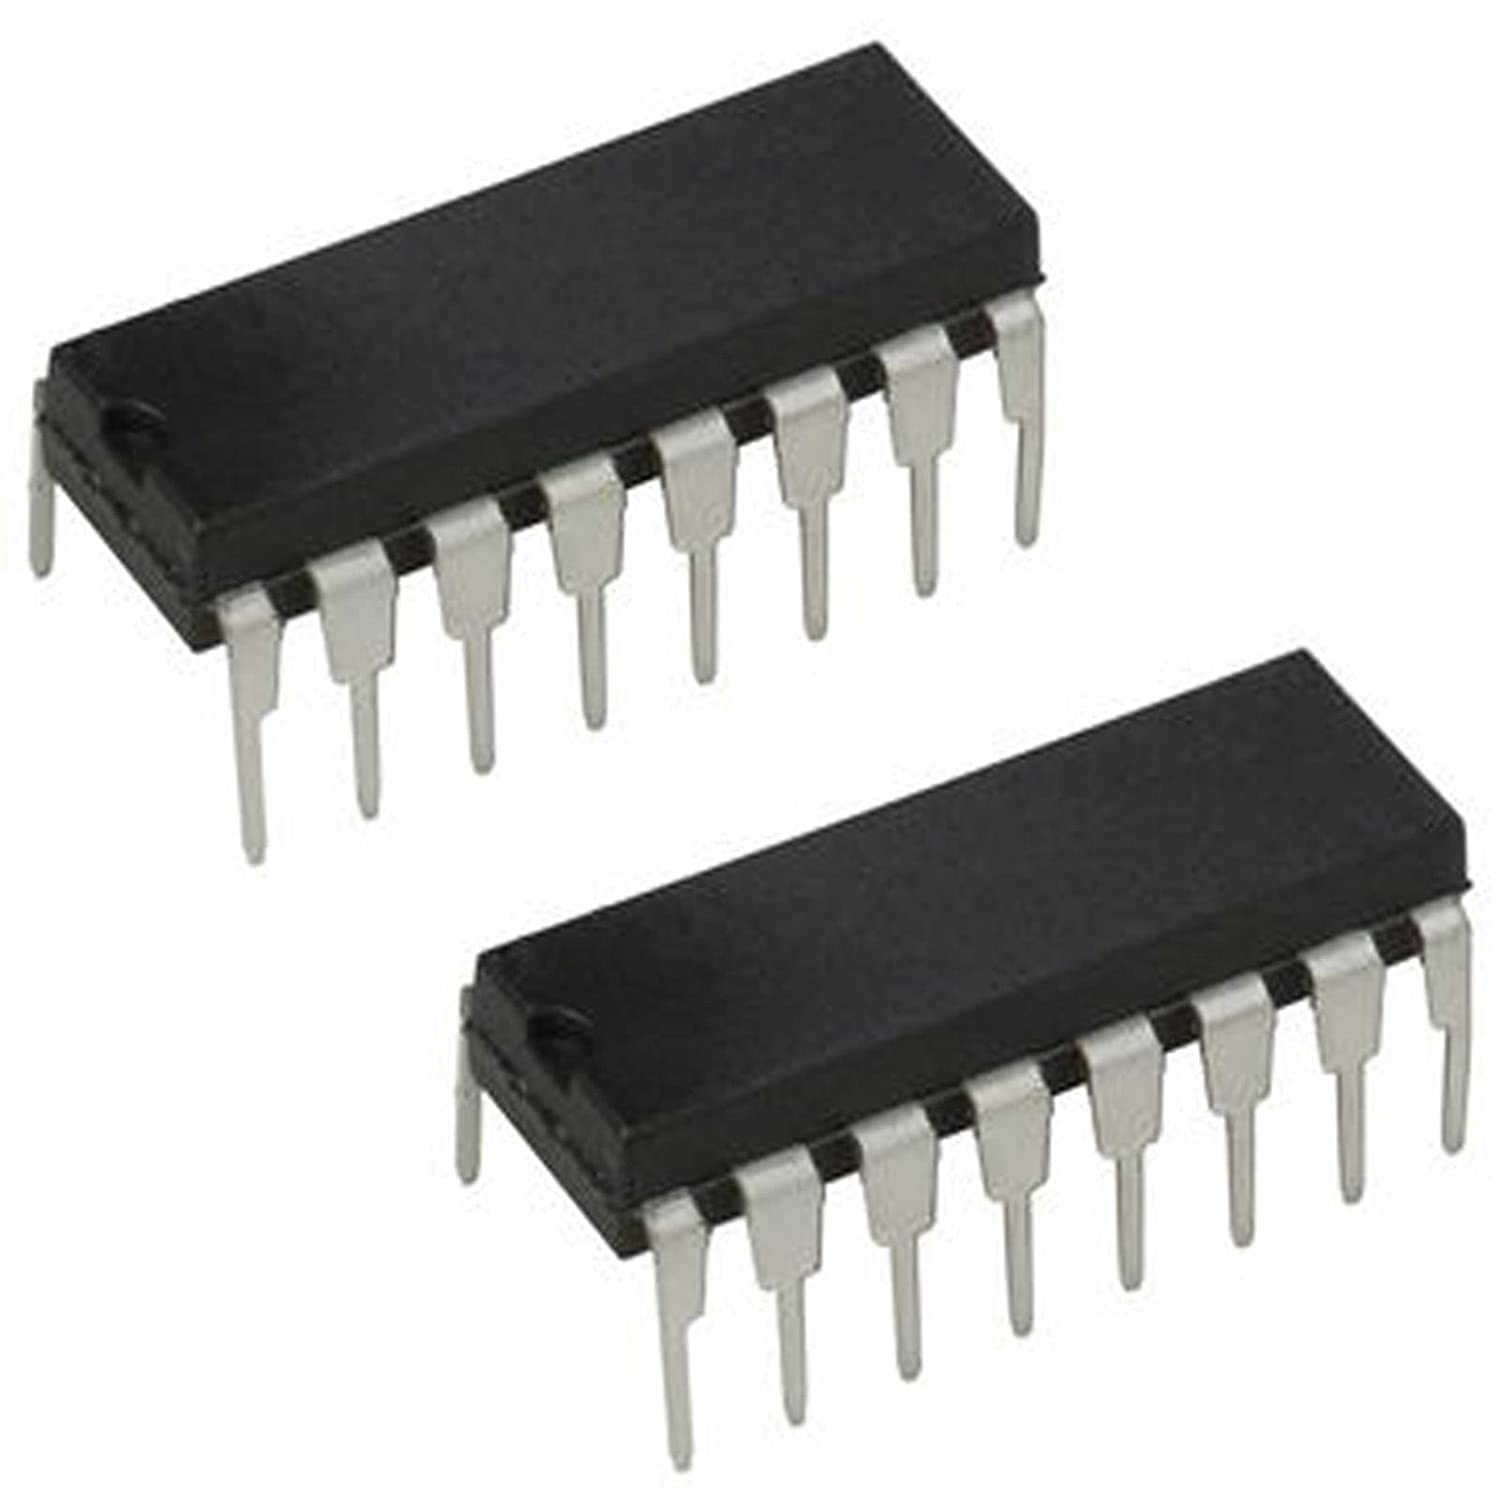 2x PT2399 Echo Low Noise Distortion Audio Processor CMOS IC PTC